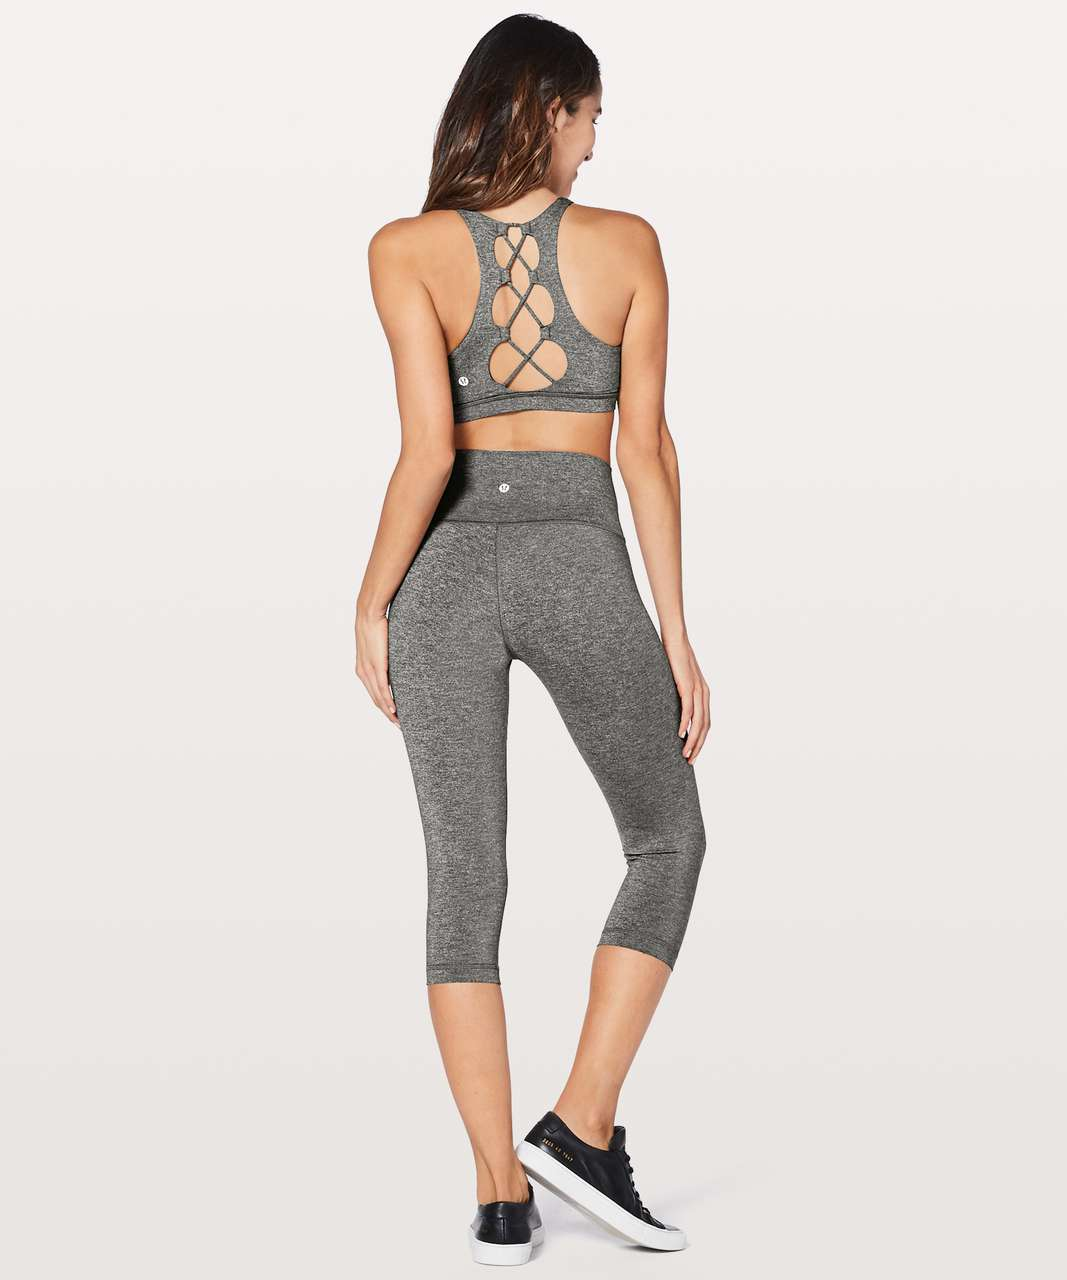 Lululemon Tied To It Bra - Heathered Black